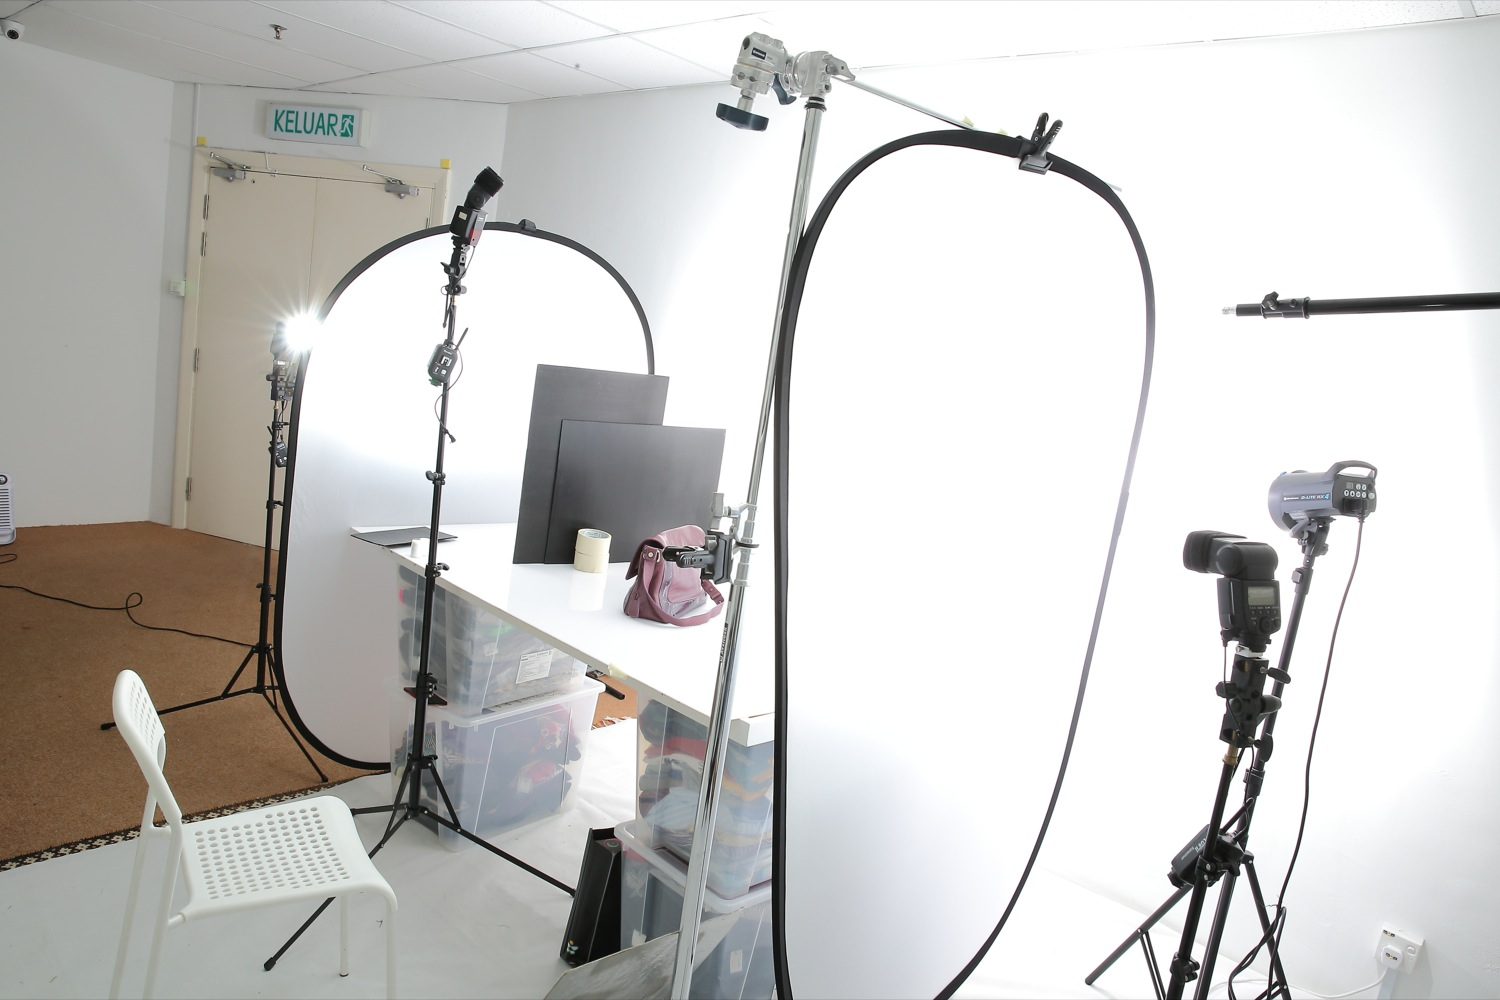 BTS: Professional product photography lighting setup by Mudframes on white background and white acrylic surface